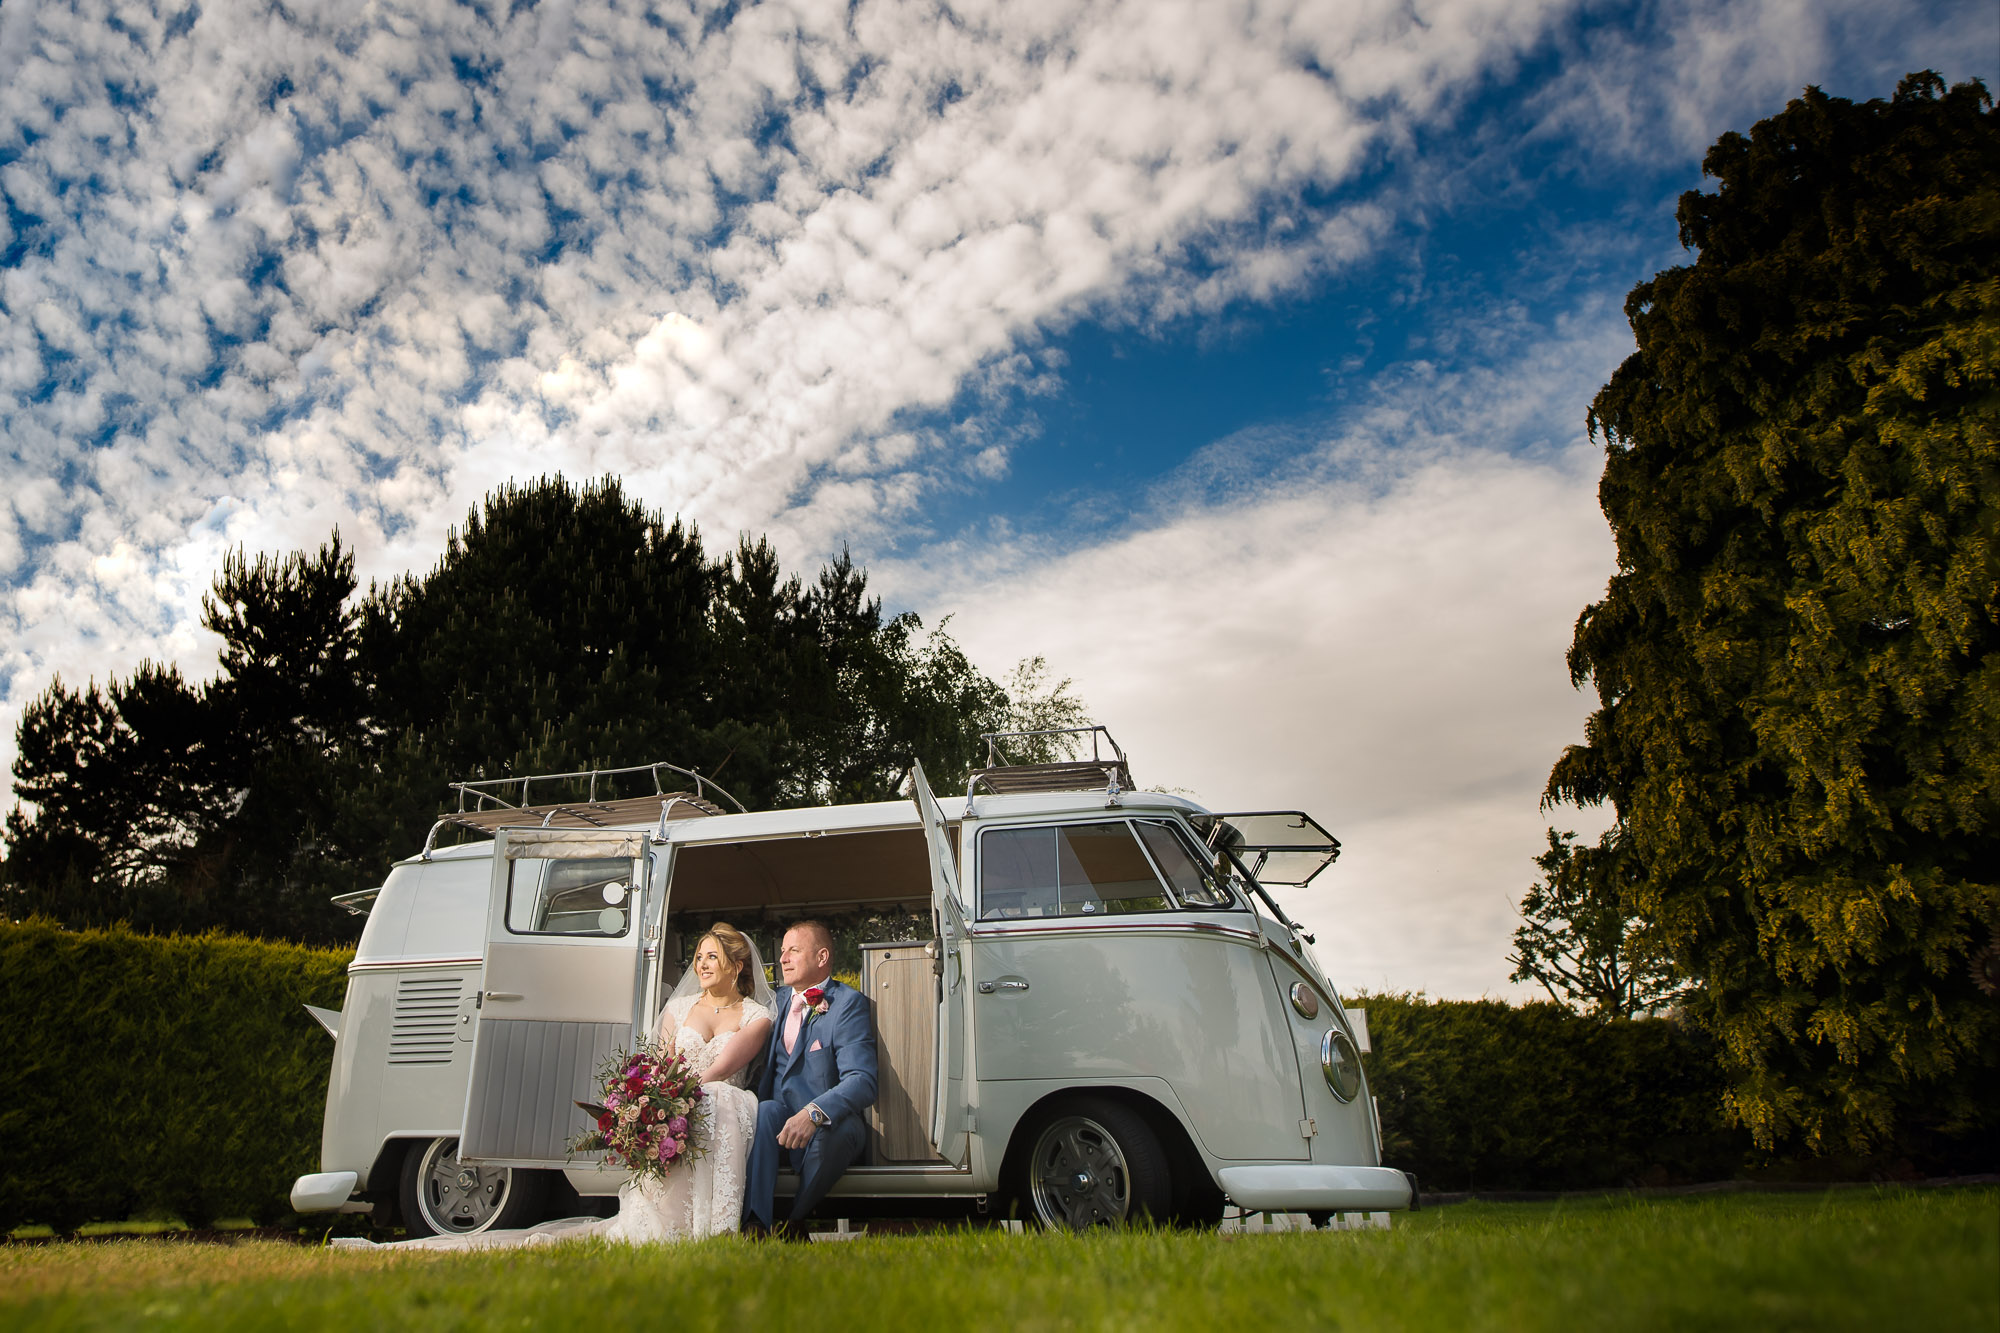 Bride and Groom and Phoebe the Camper